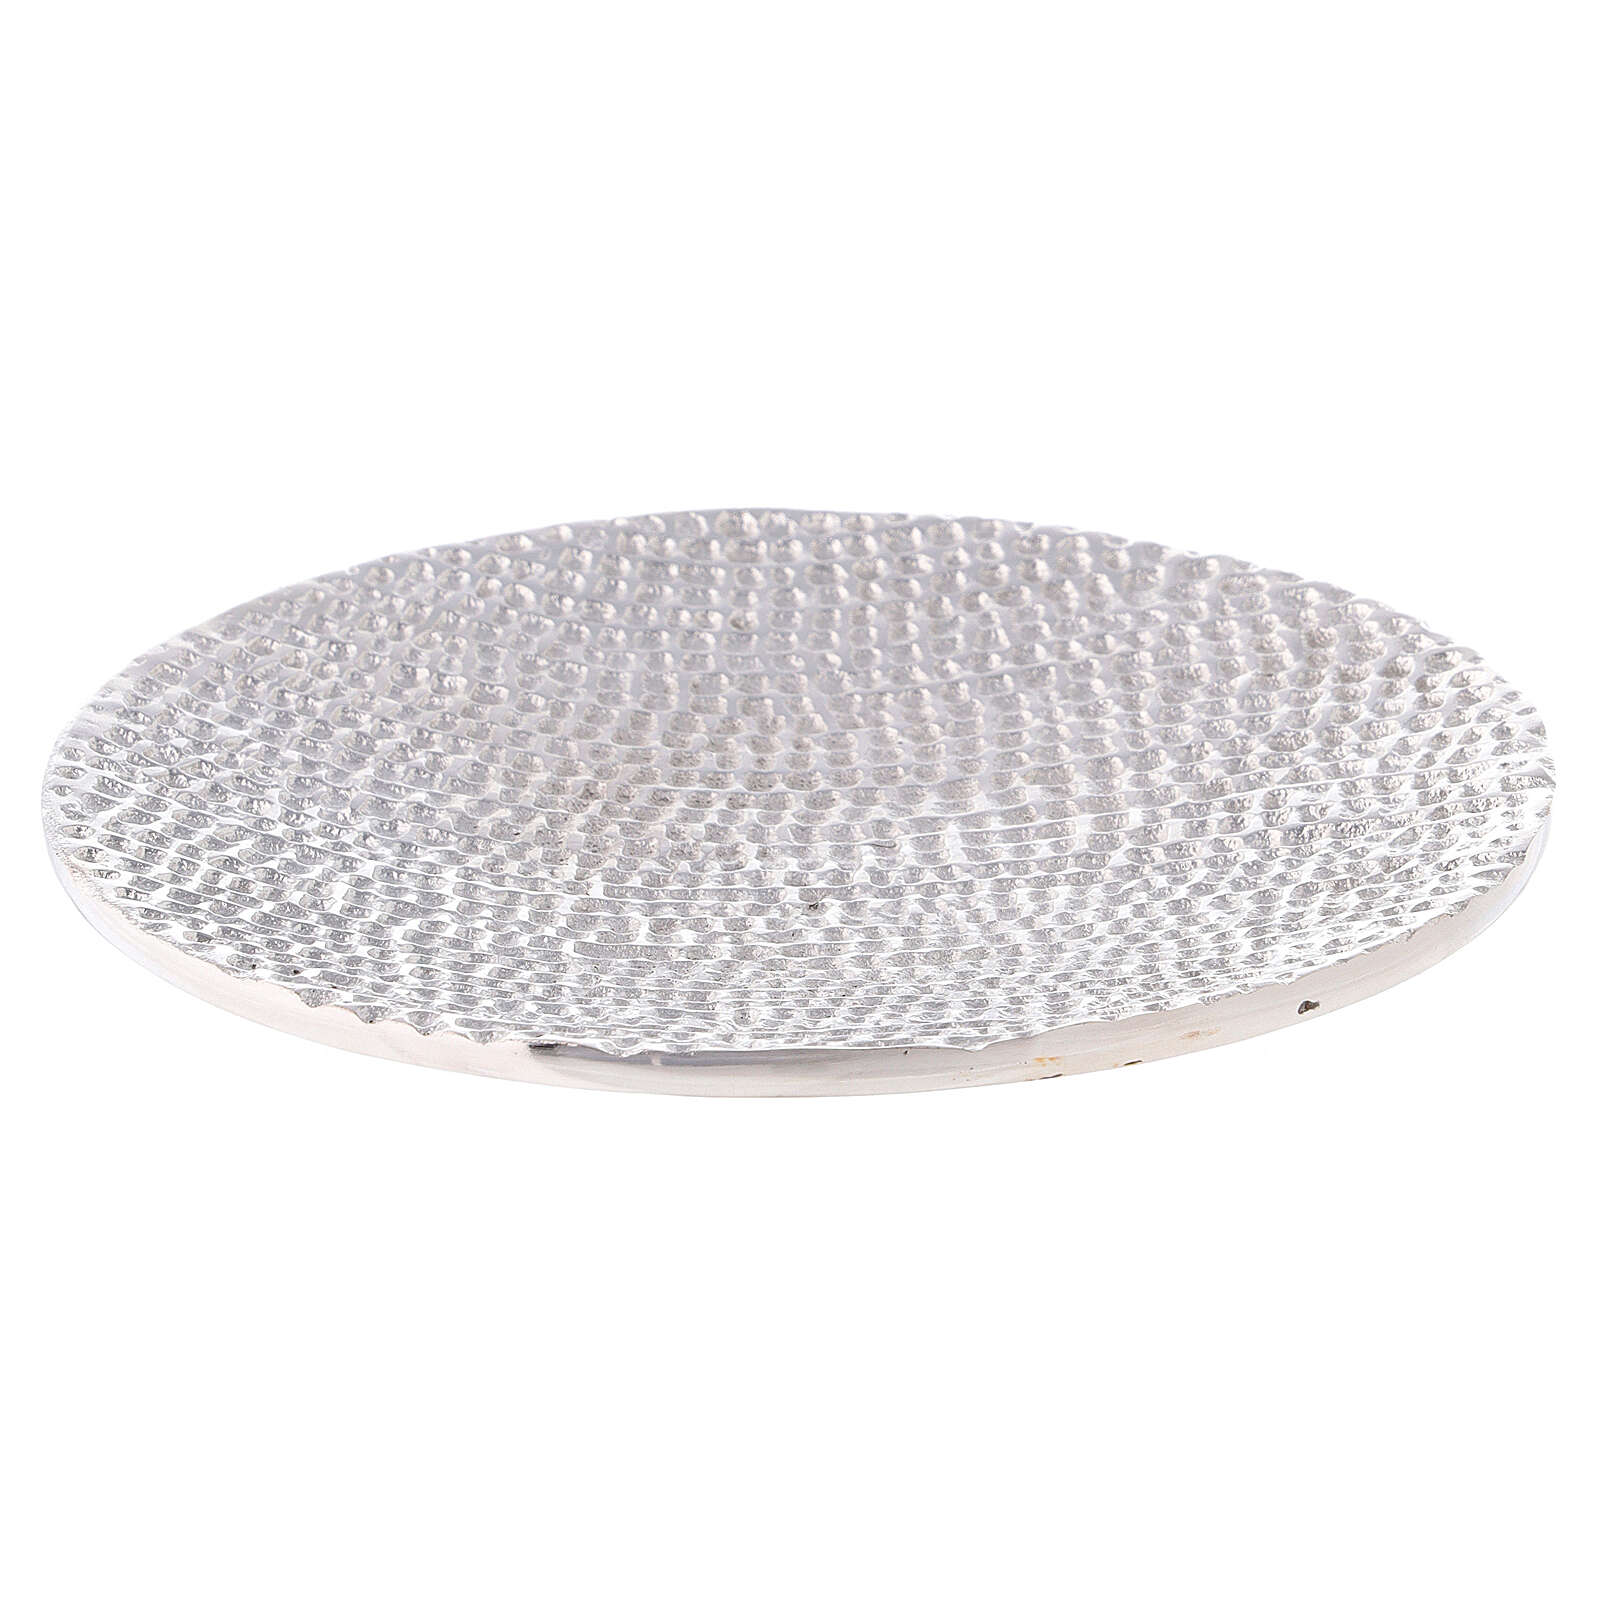 Honeycomb aluminium candle holder plate d. 5 1/2 in 3